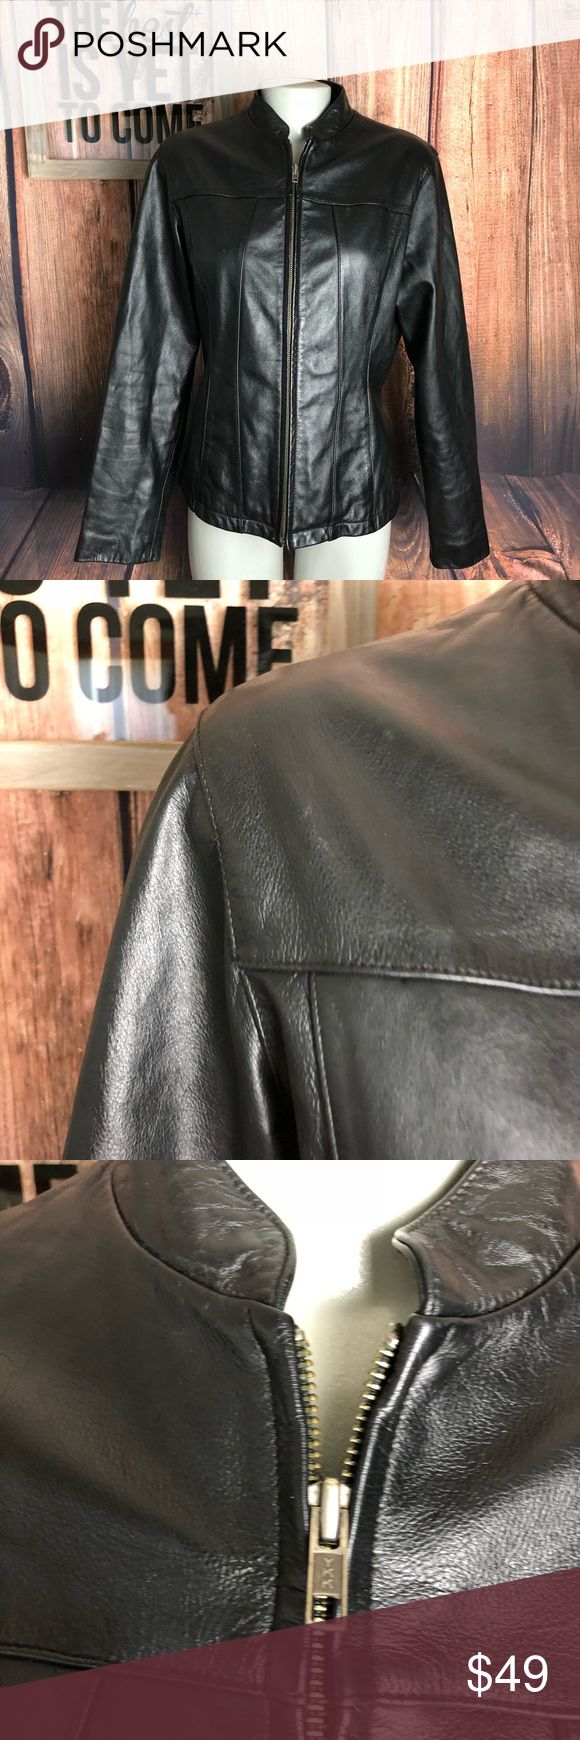 """Wilson's leather black jacket women's Nice pre owned condition measures 29"""" long an 20"""" pit to pit Wilsons Leather Jackets & Coats Utility Jackets"""